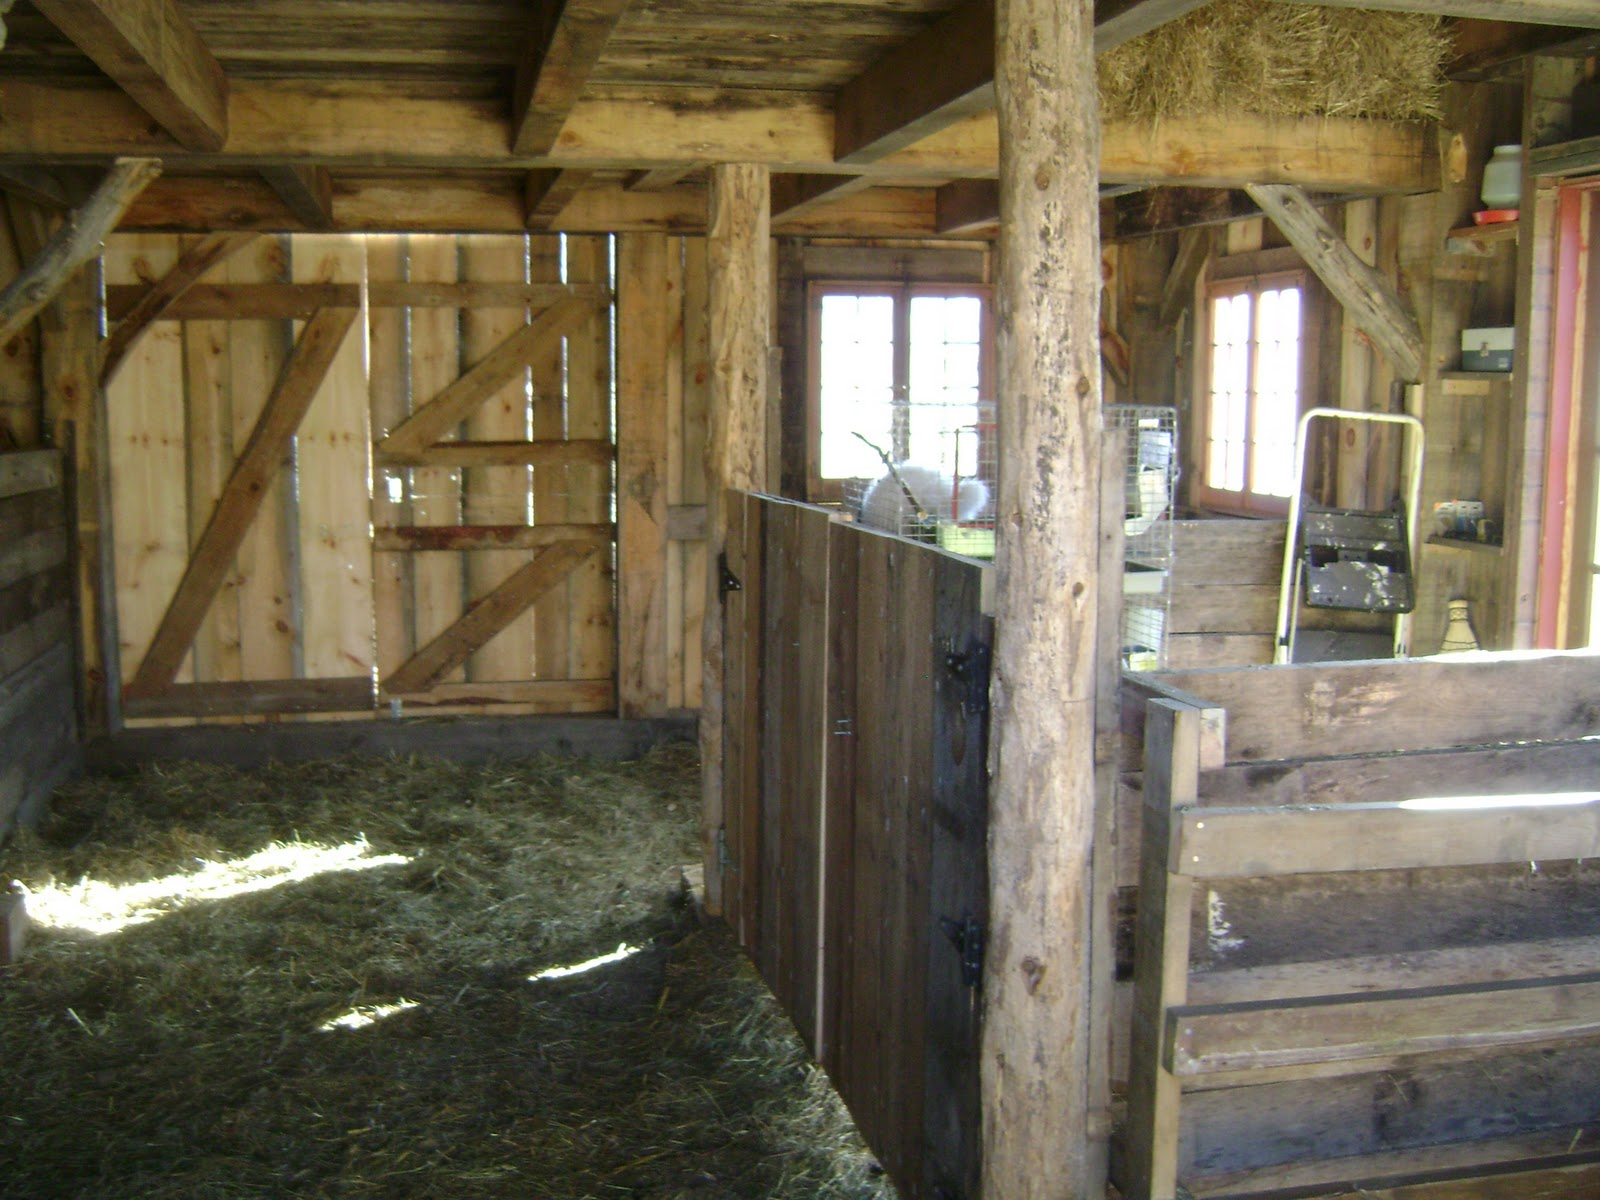 This Shot Shows The Working Space For Humanstaken From Animal Side You Can See Some Hay Peeking Through Loft Entrance